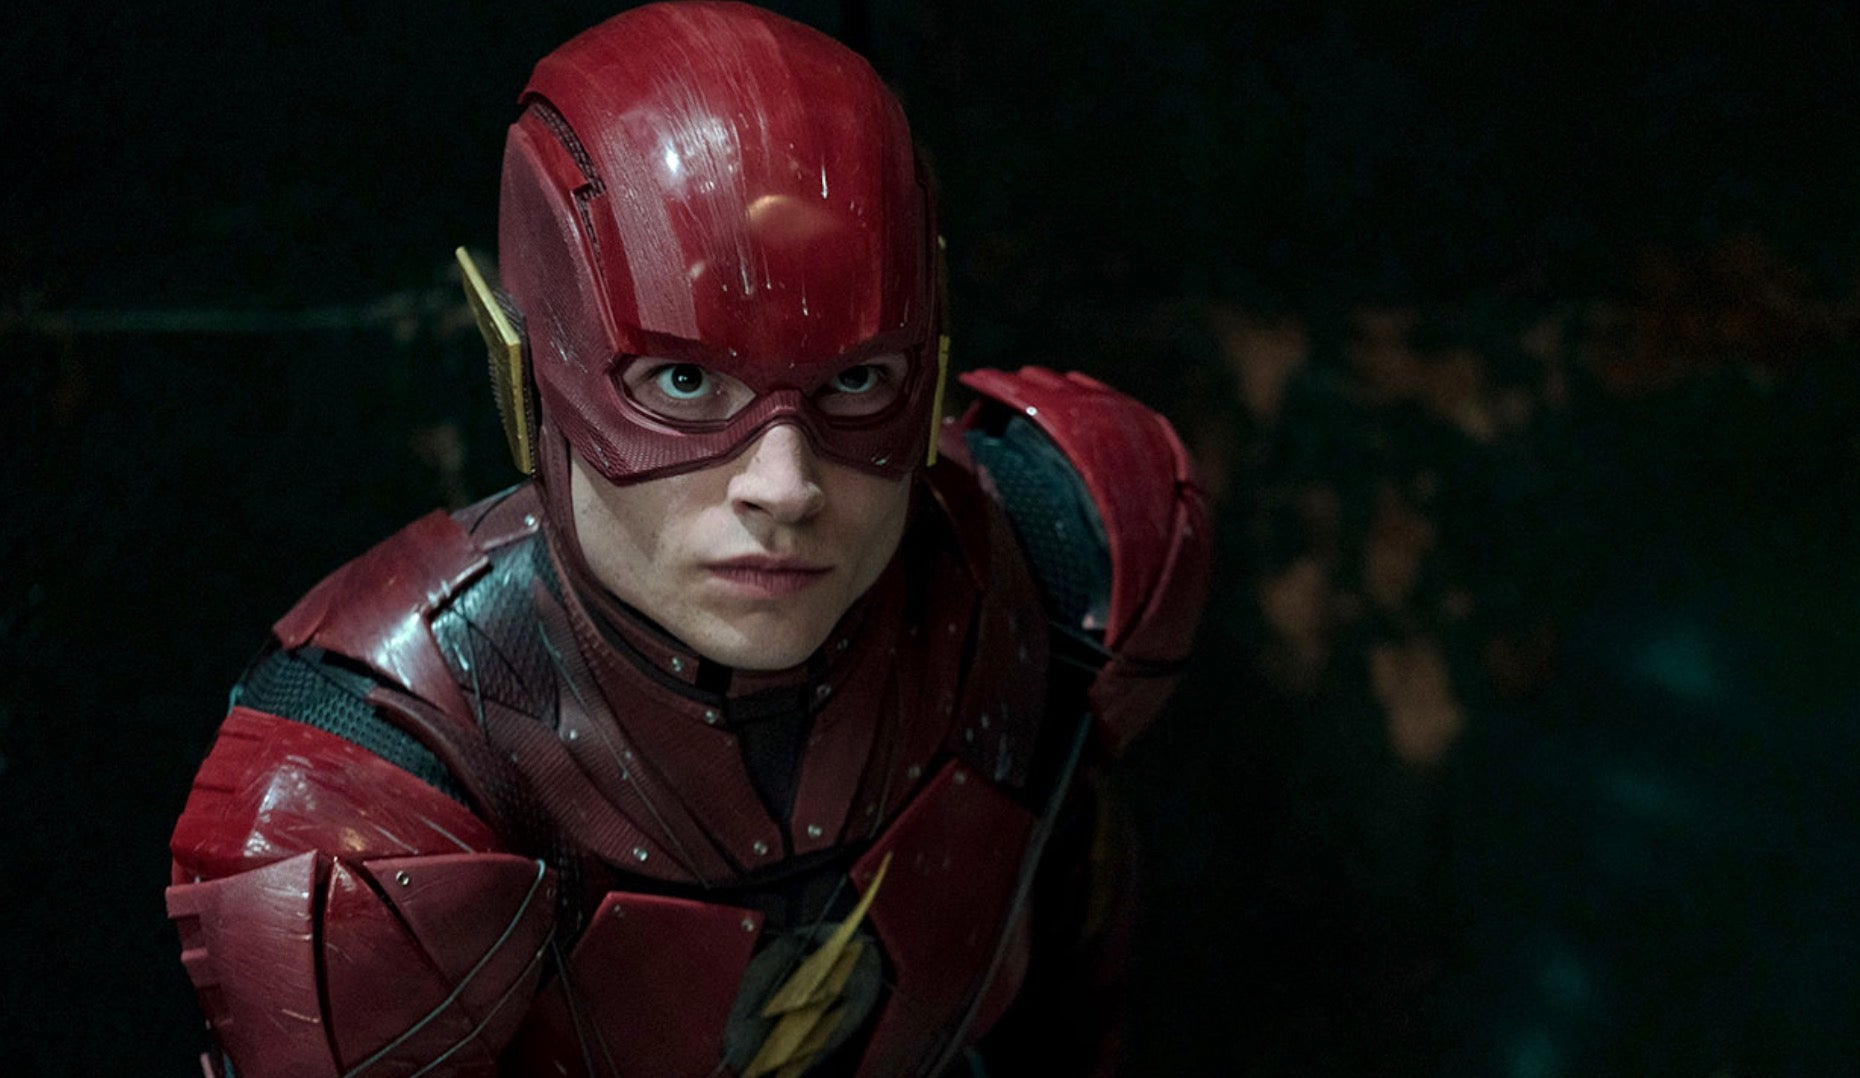 The Flash Movie Might Have Gained A New Director And Writer, But Ezra Miller Remains